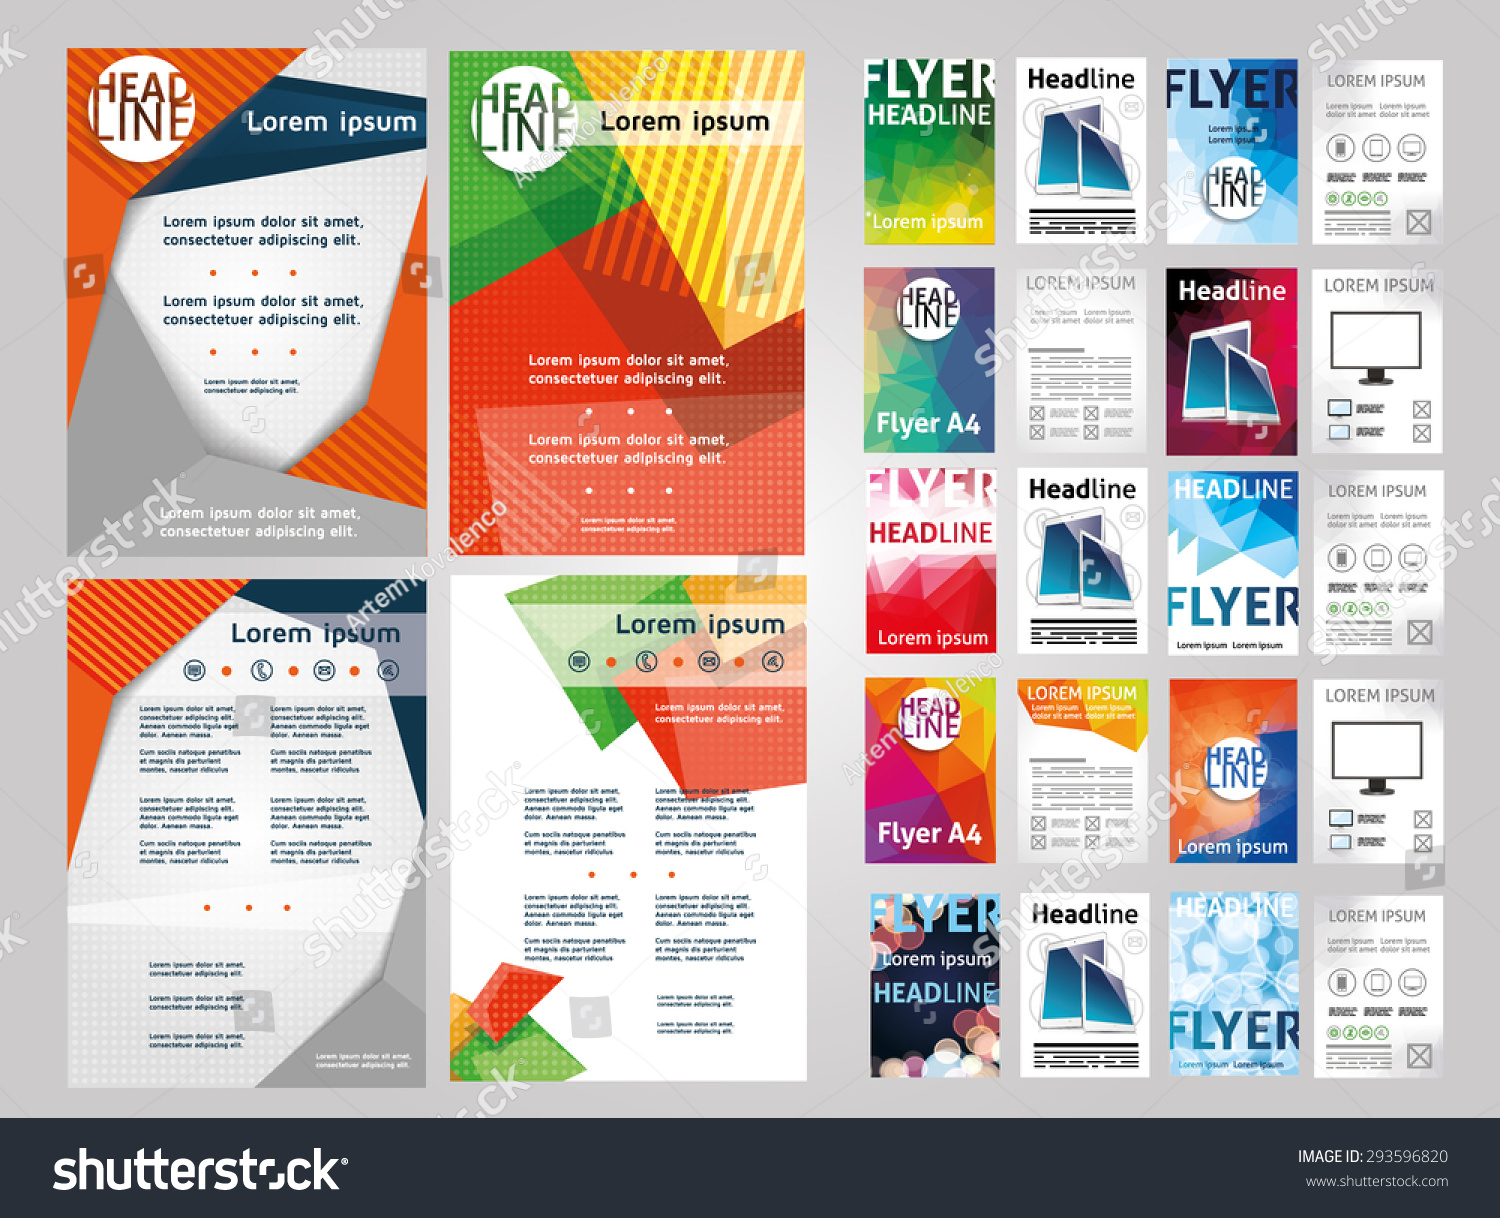 flyers examples invoice template receipt template certificate daycare flyer templates forms home 5 daycare flyer stock vector vector set of art